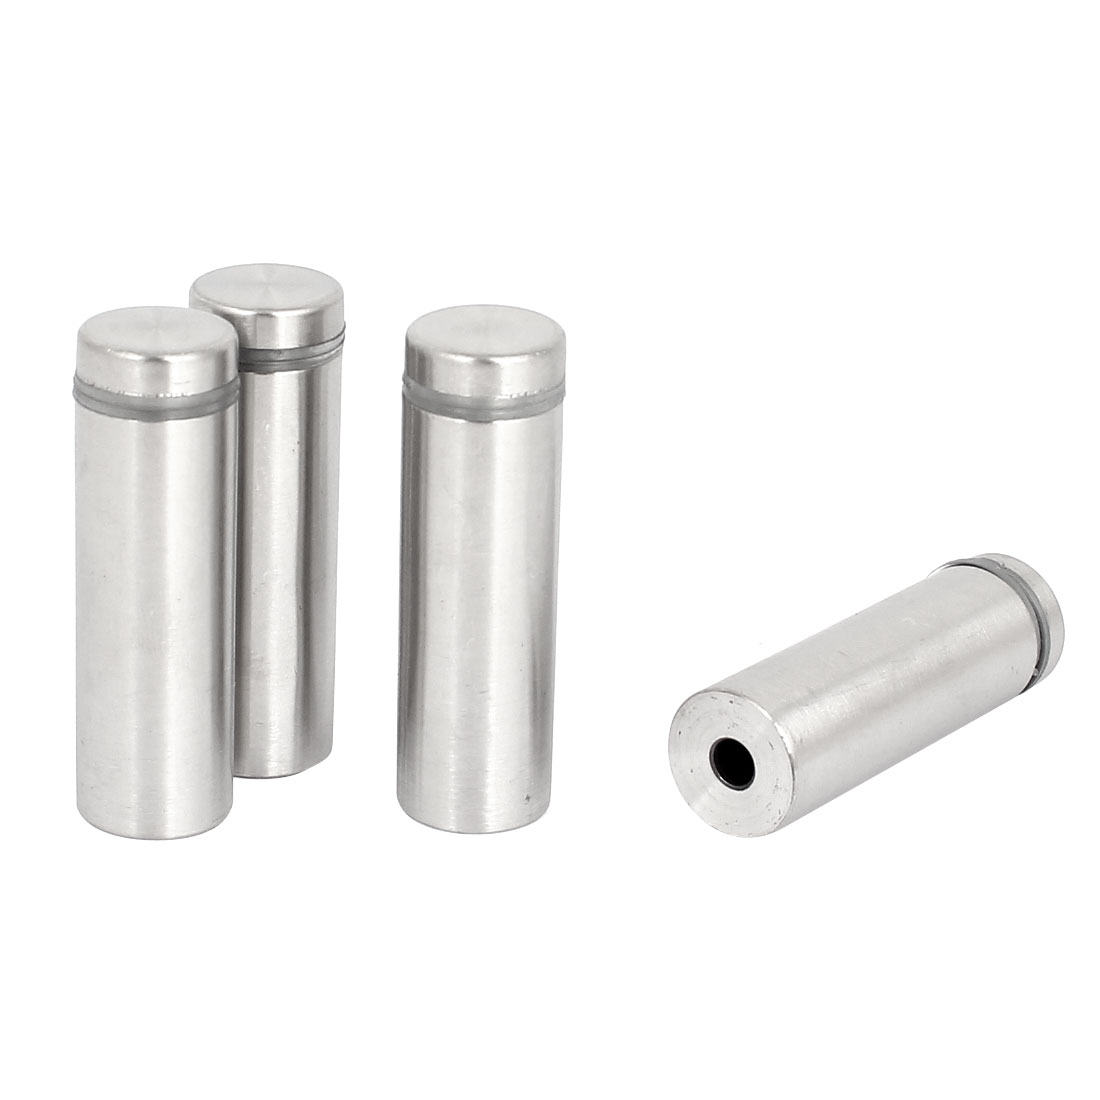 16mm x 50mm Silver Tone Advertising Nails Frameless Glass Standoff 4 Pcs